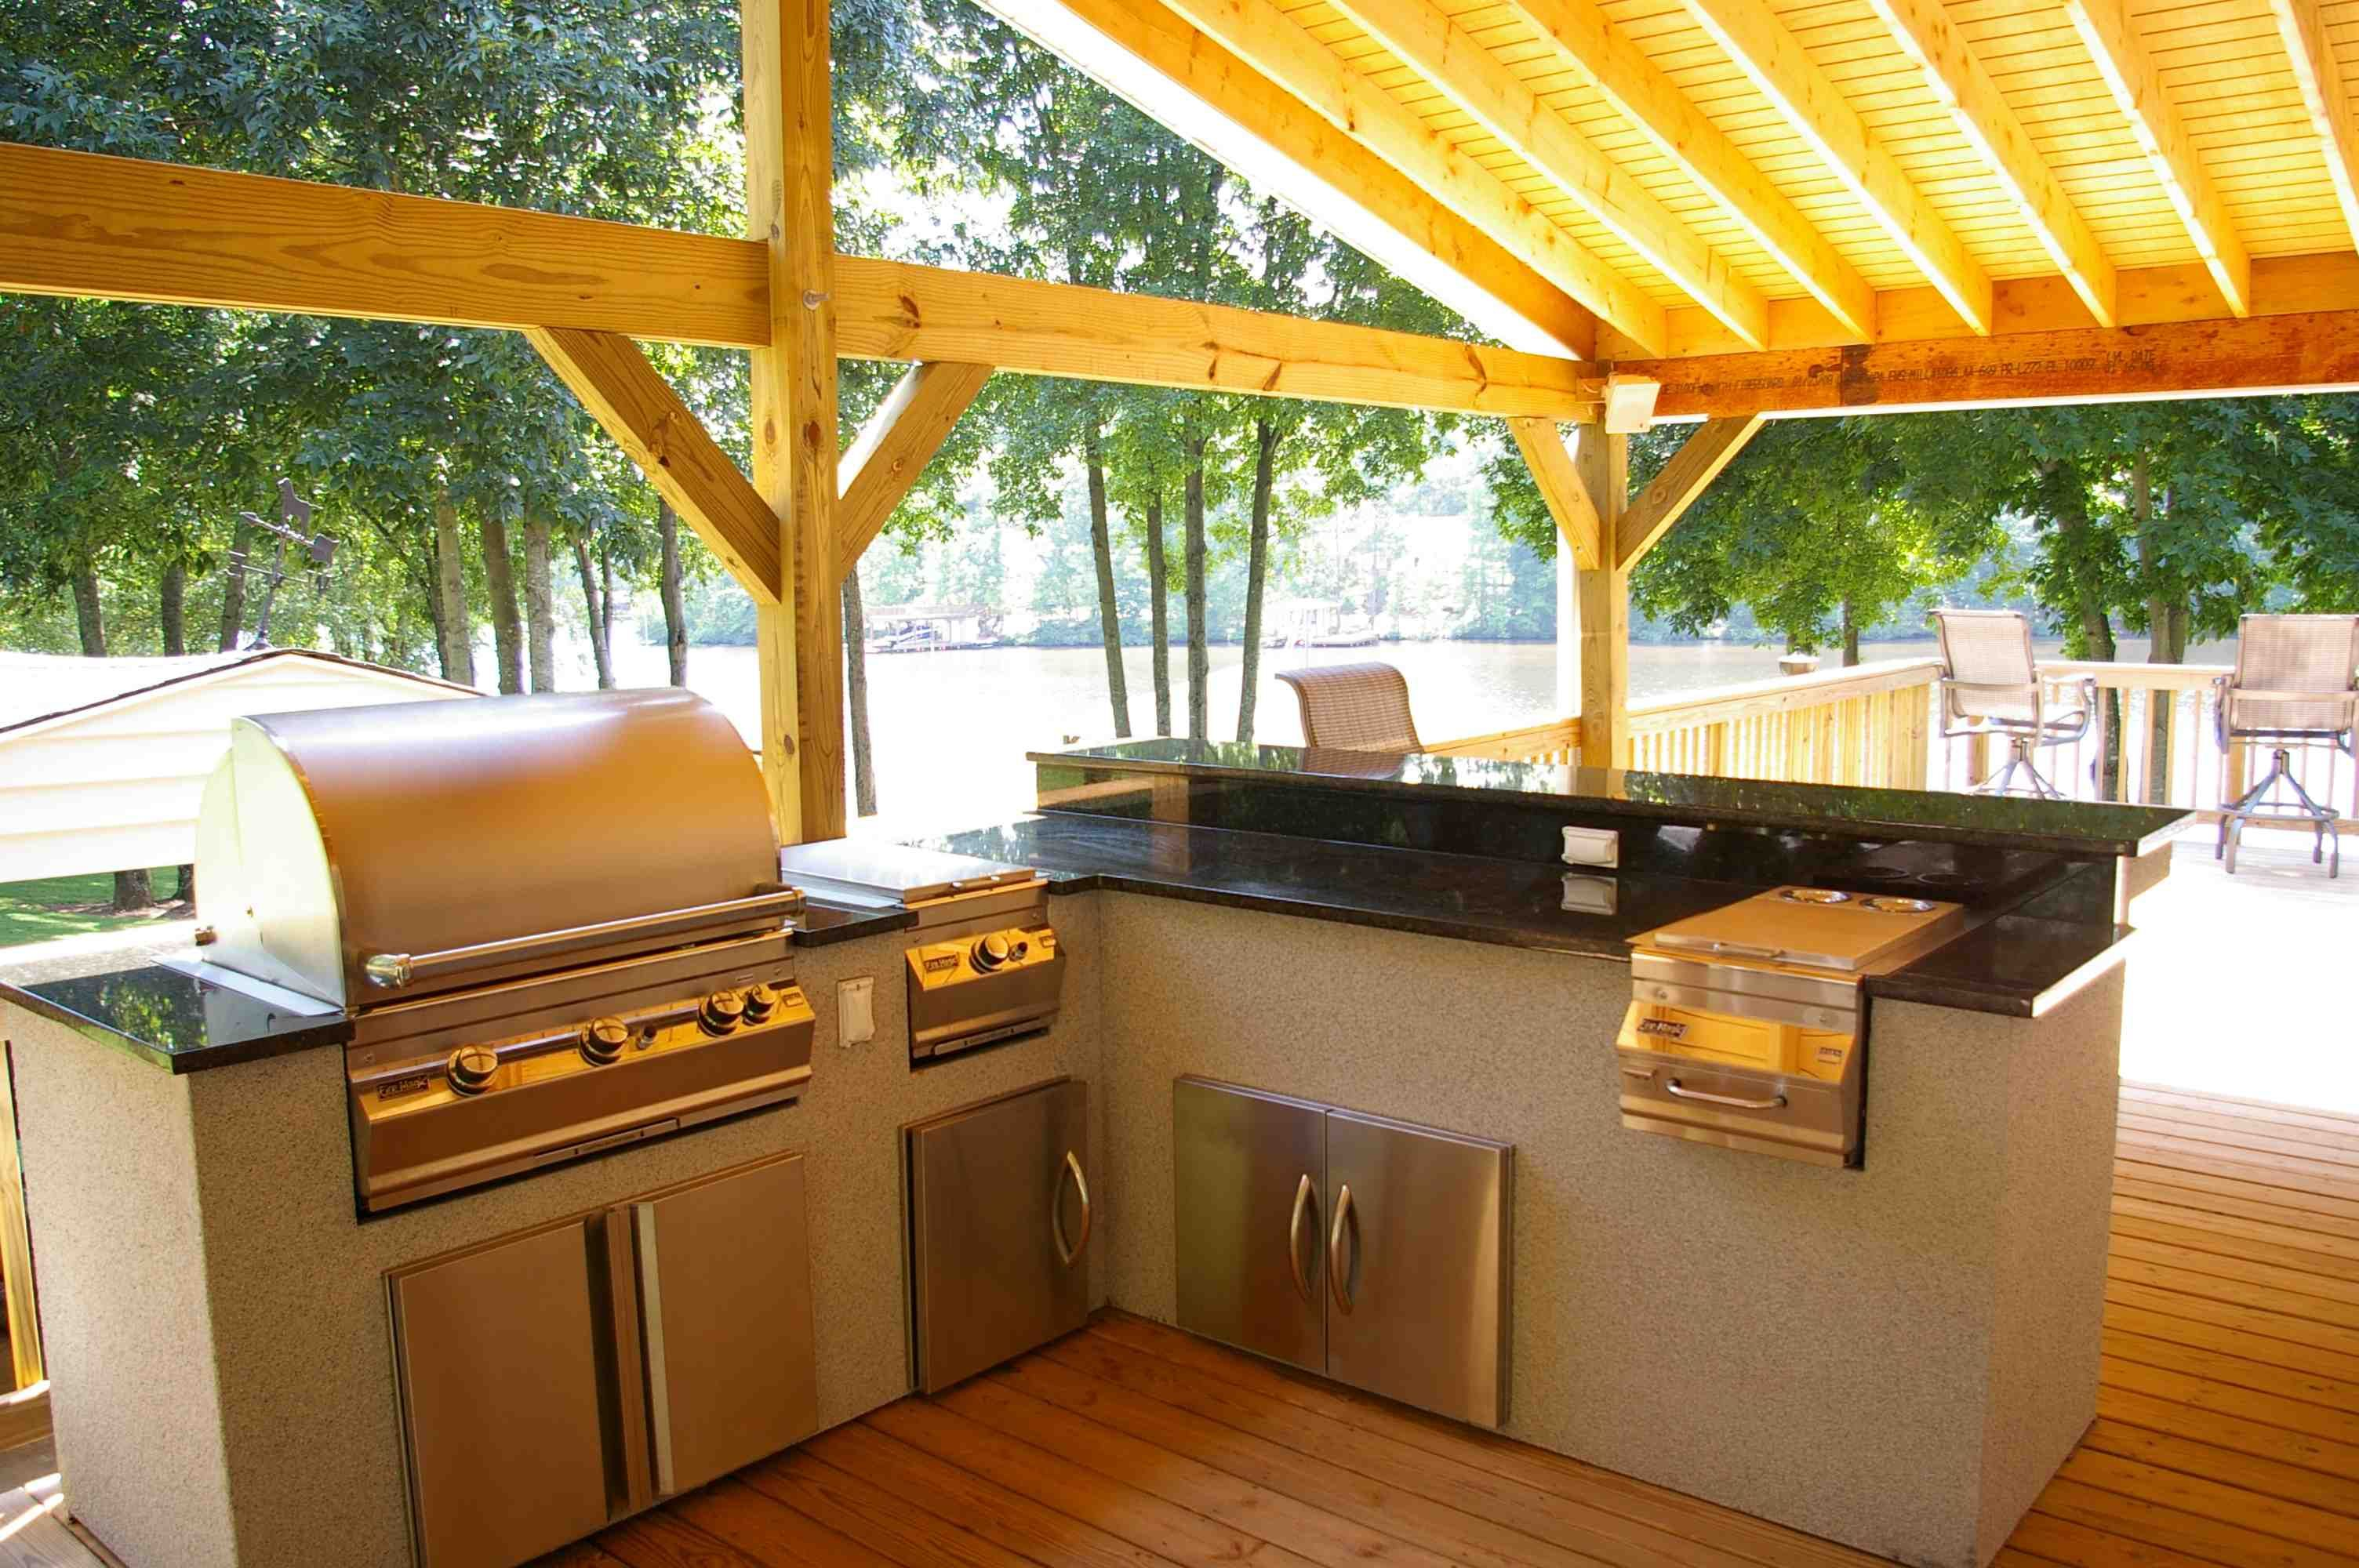 Outdoor Kitchens Is Among The Preferred House Decoration In The World Instyle Fashion One Covered Outdoor Kitchens Backyard Kitchen Outdoor Kitchen Countertops